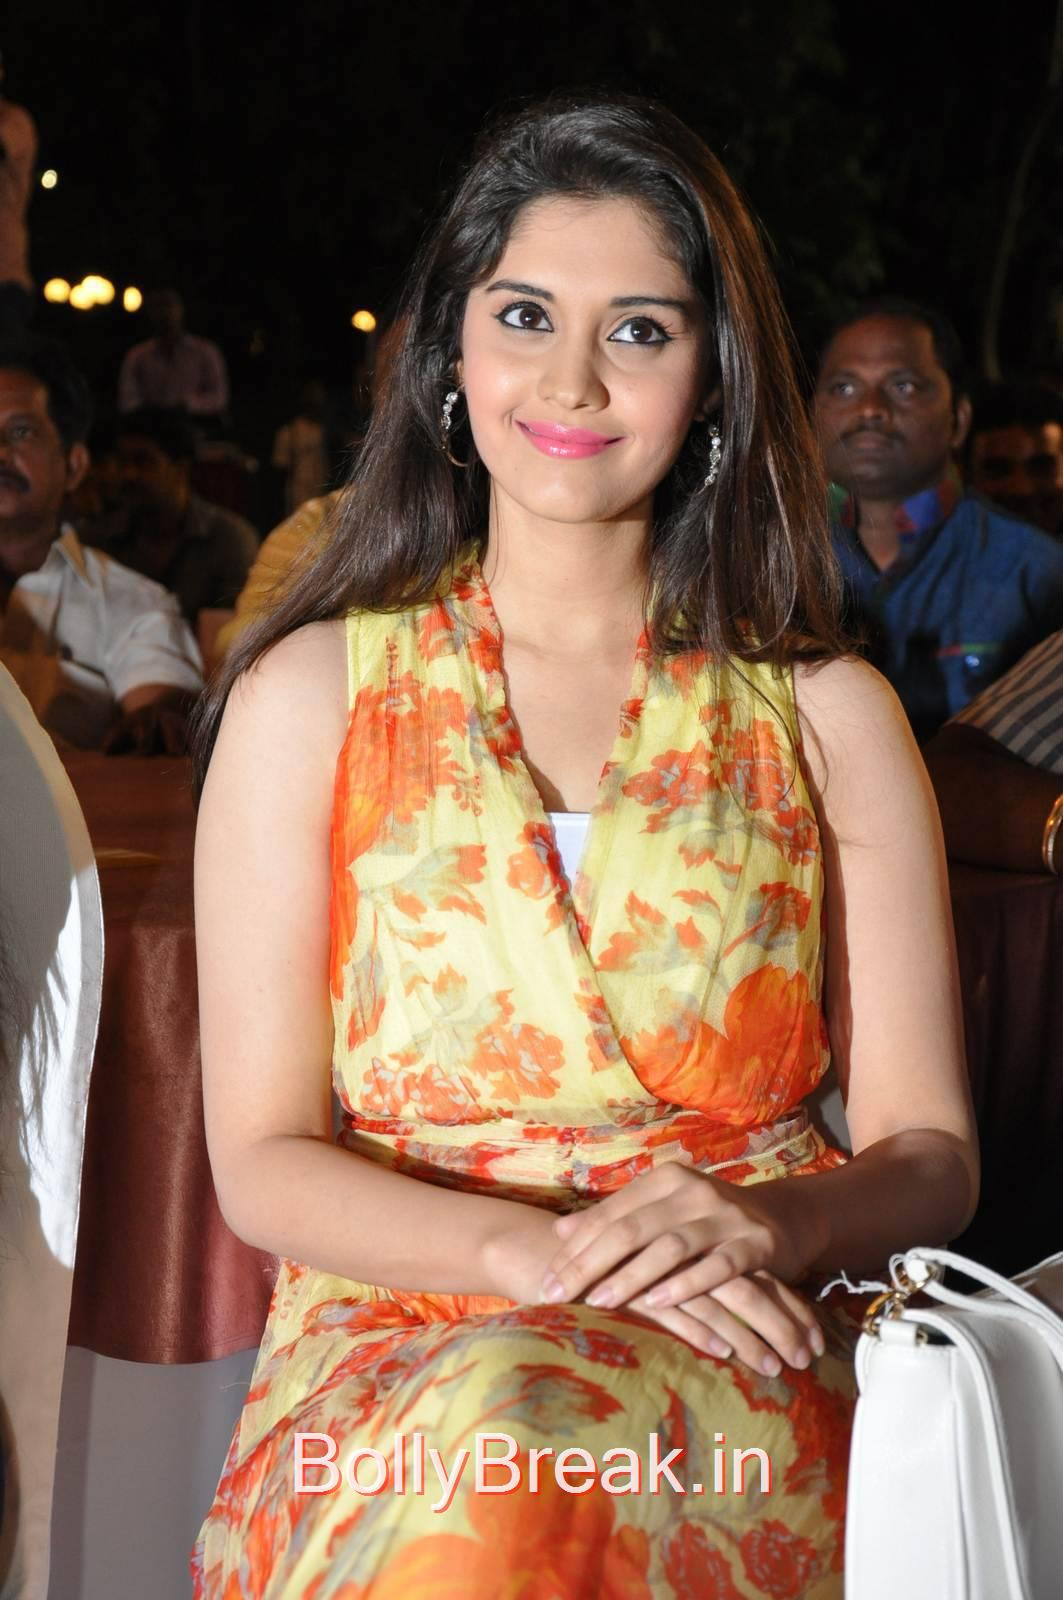 Surabhi Pics, Actress Surabhi Hot Photo gallery from an event